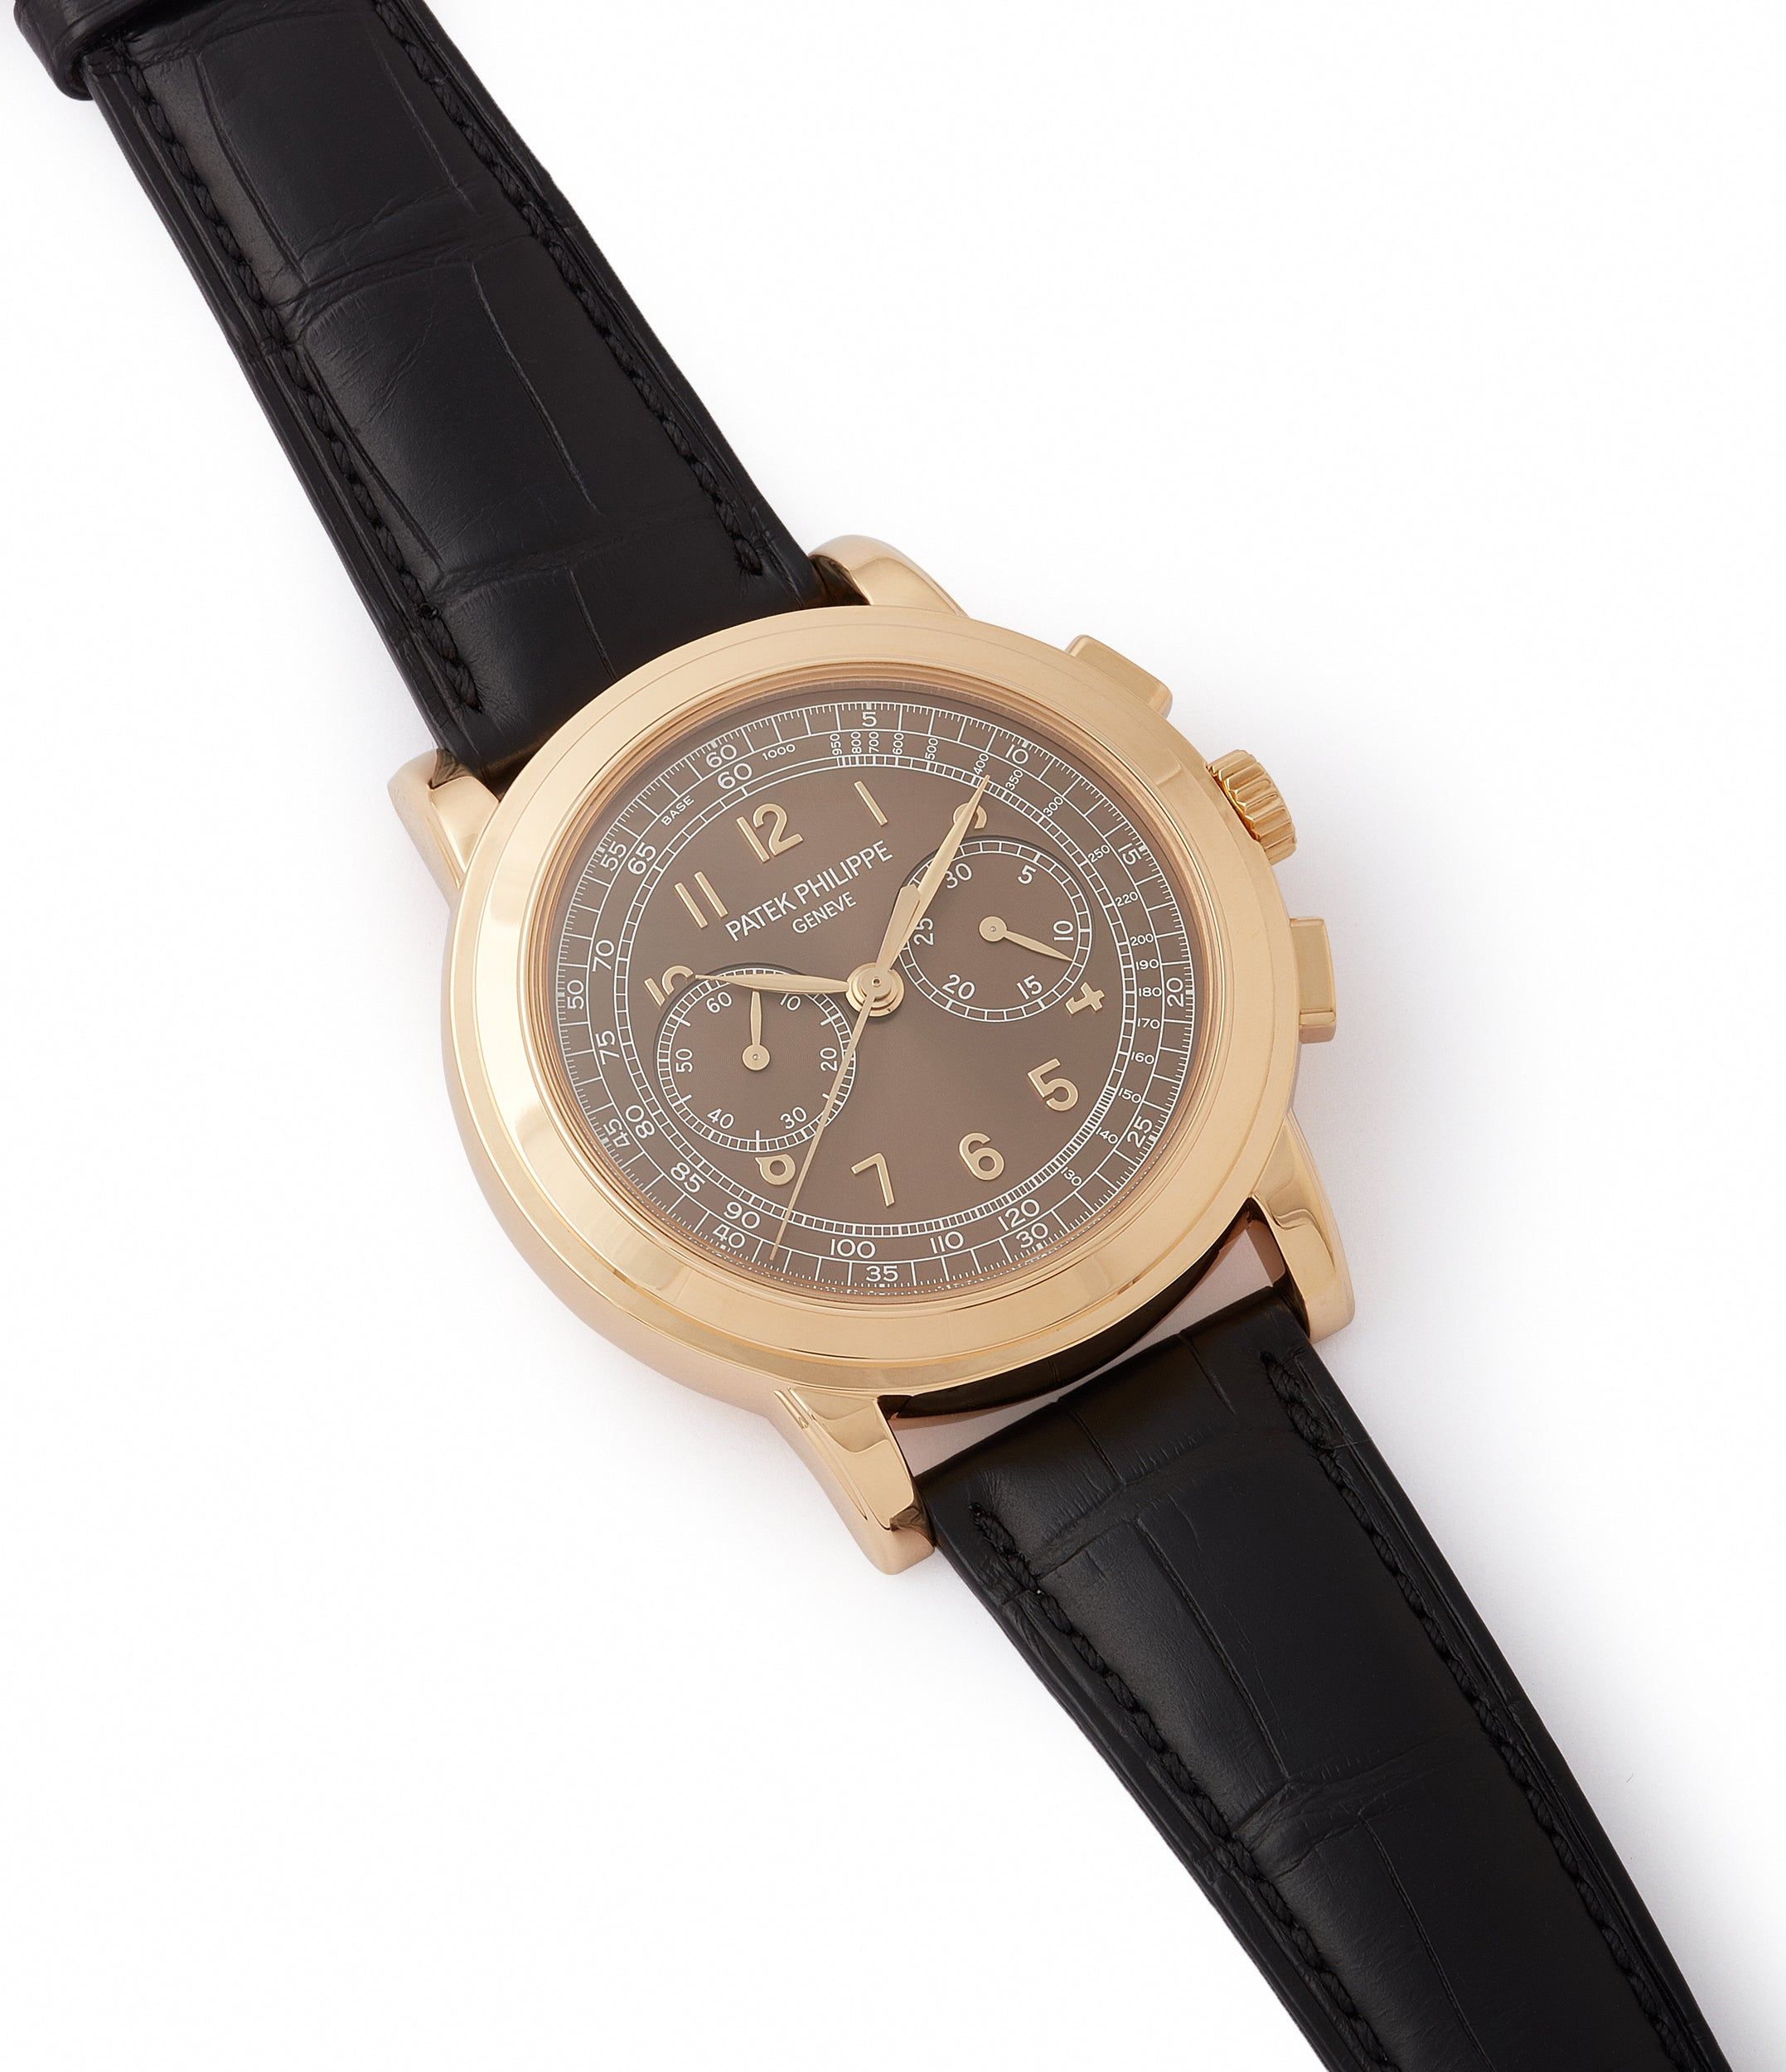 selling pre-owned Patek Philippe 5070J-012 Saatchi Edition Chronograph yellow gold watch for sale online at A Collected Man London UK specialist of rare watches